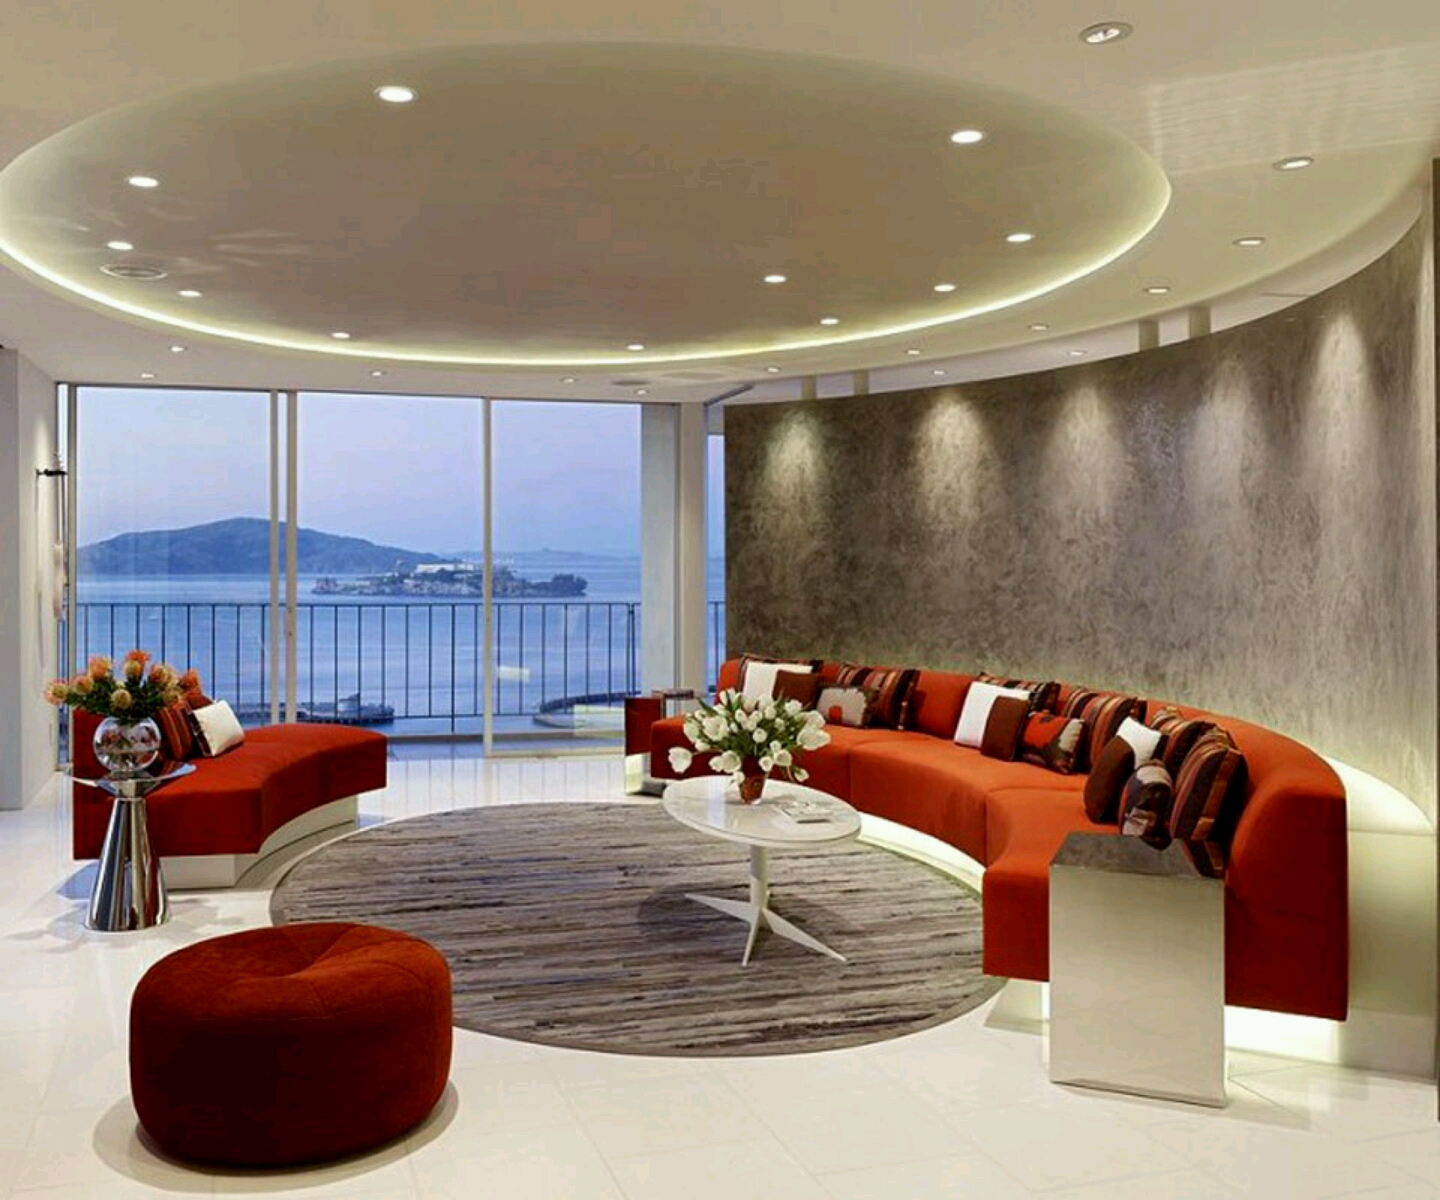 New home designs latest modern interior decoration living rooms ceiling designs ideas for Modern living room interior design ideas